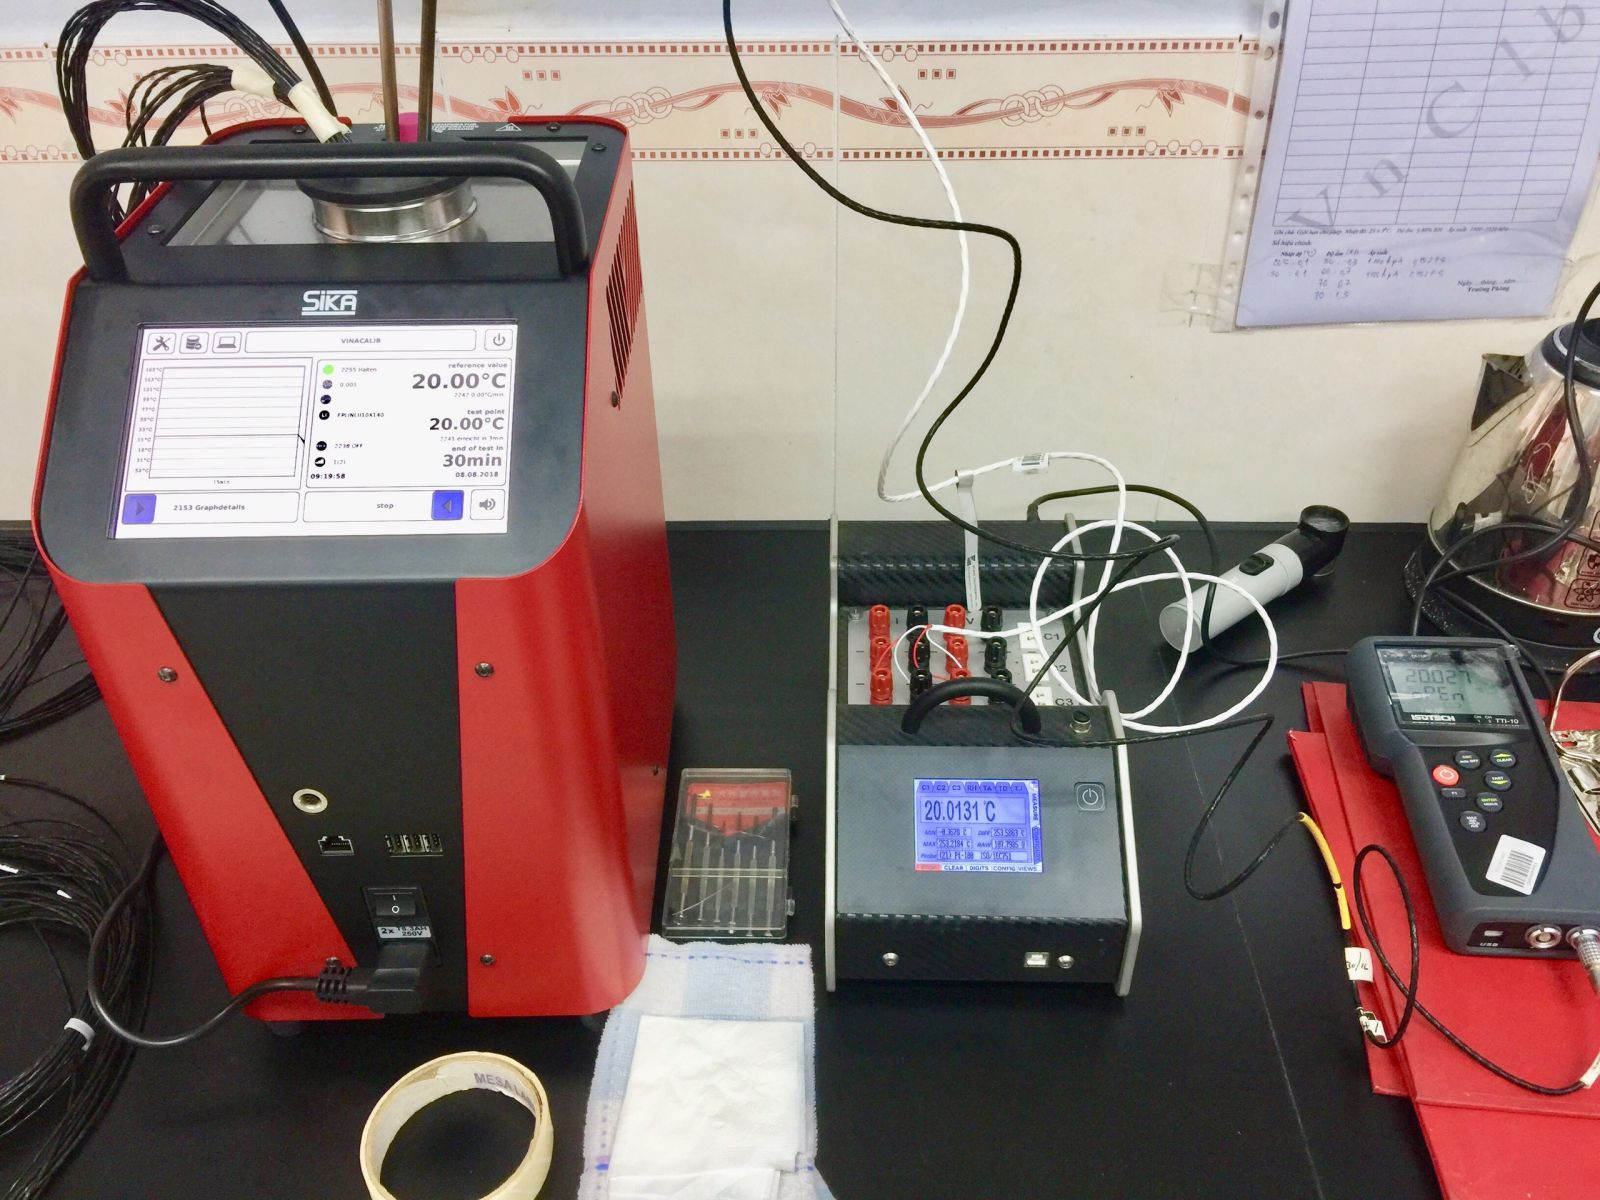 Calibration and test instruments